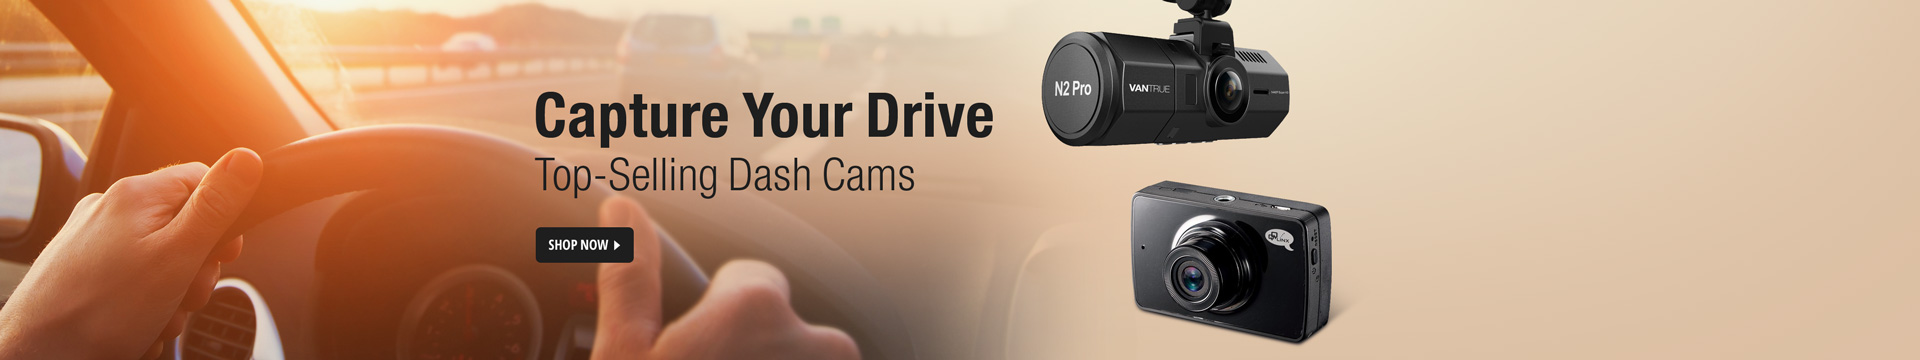 Capture your drive